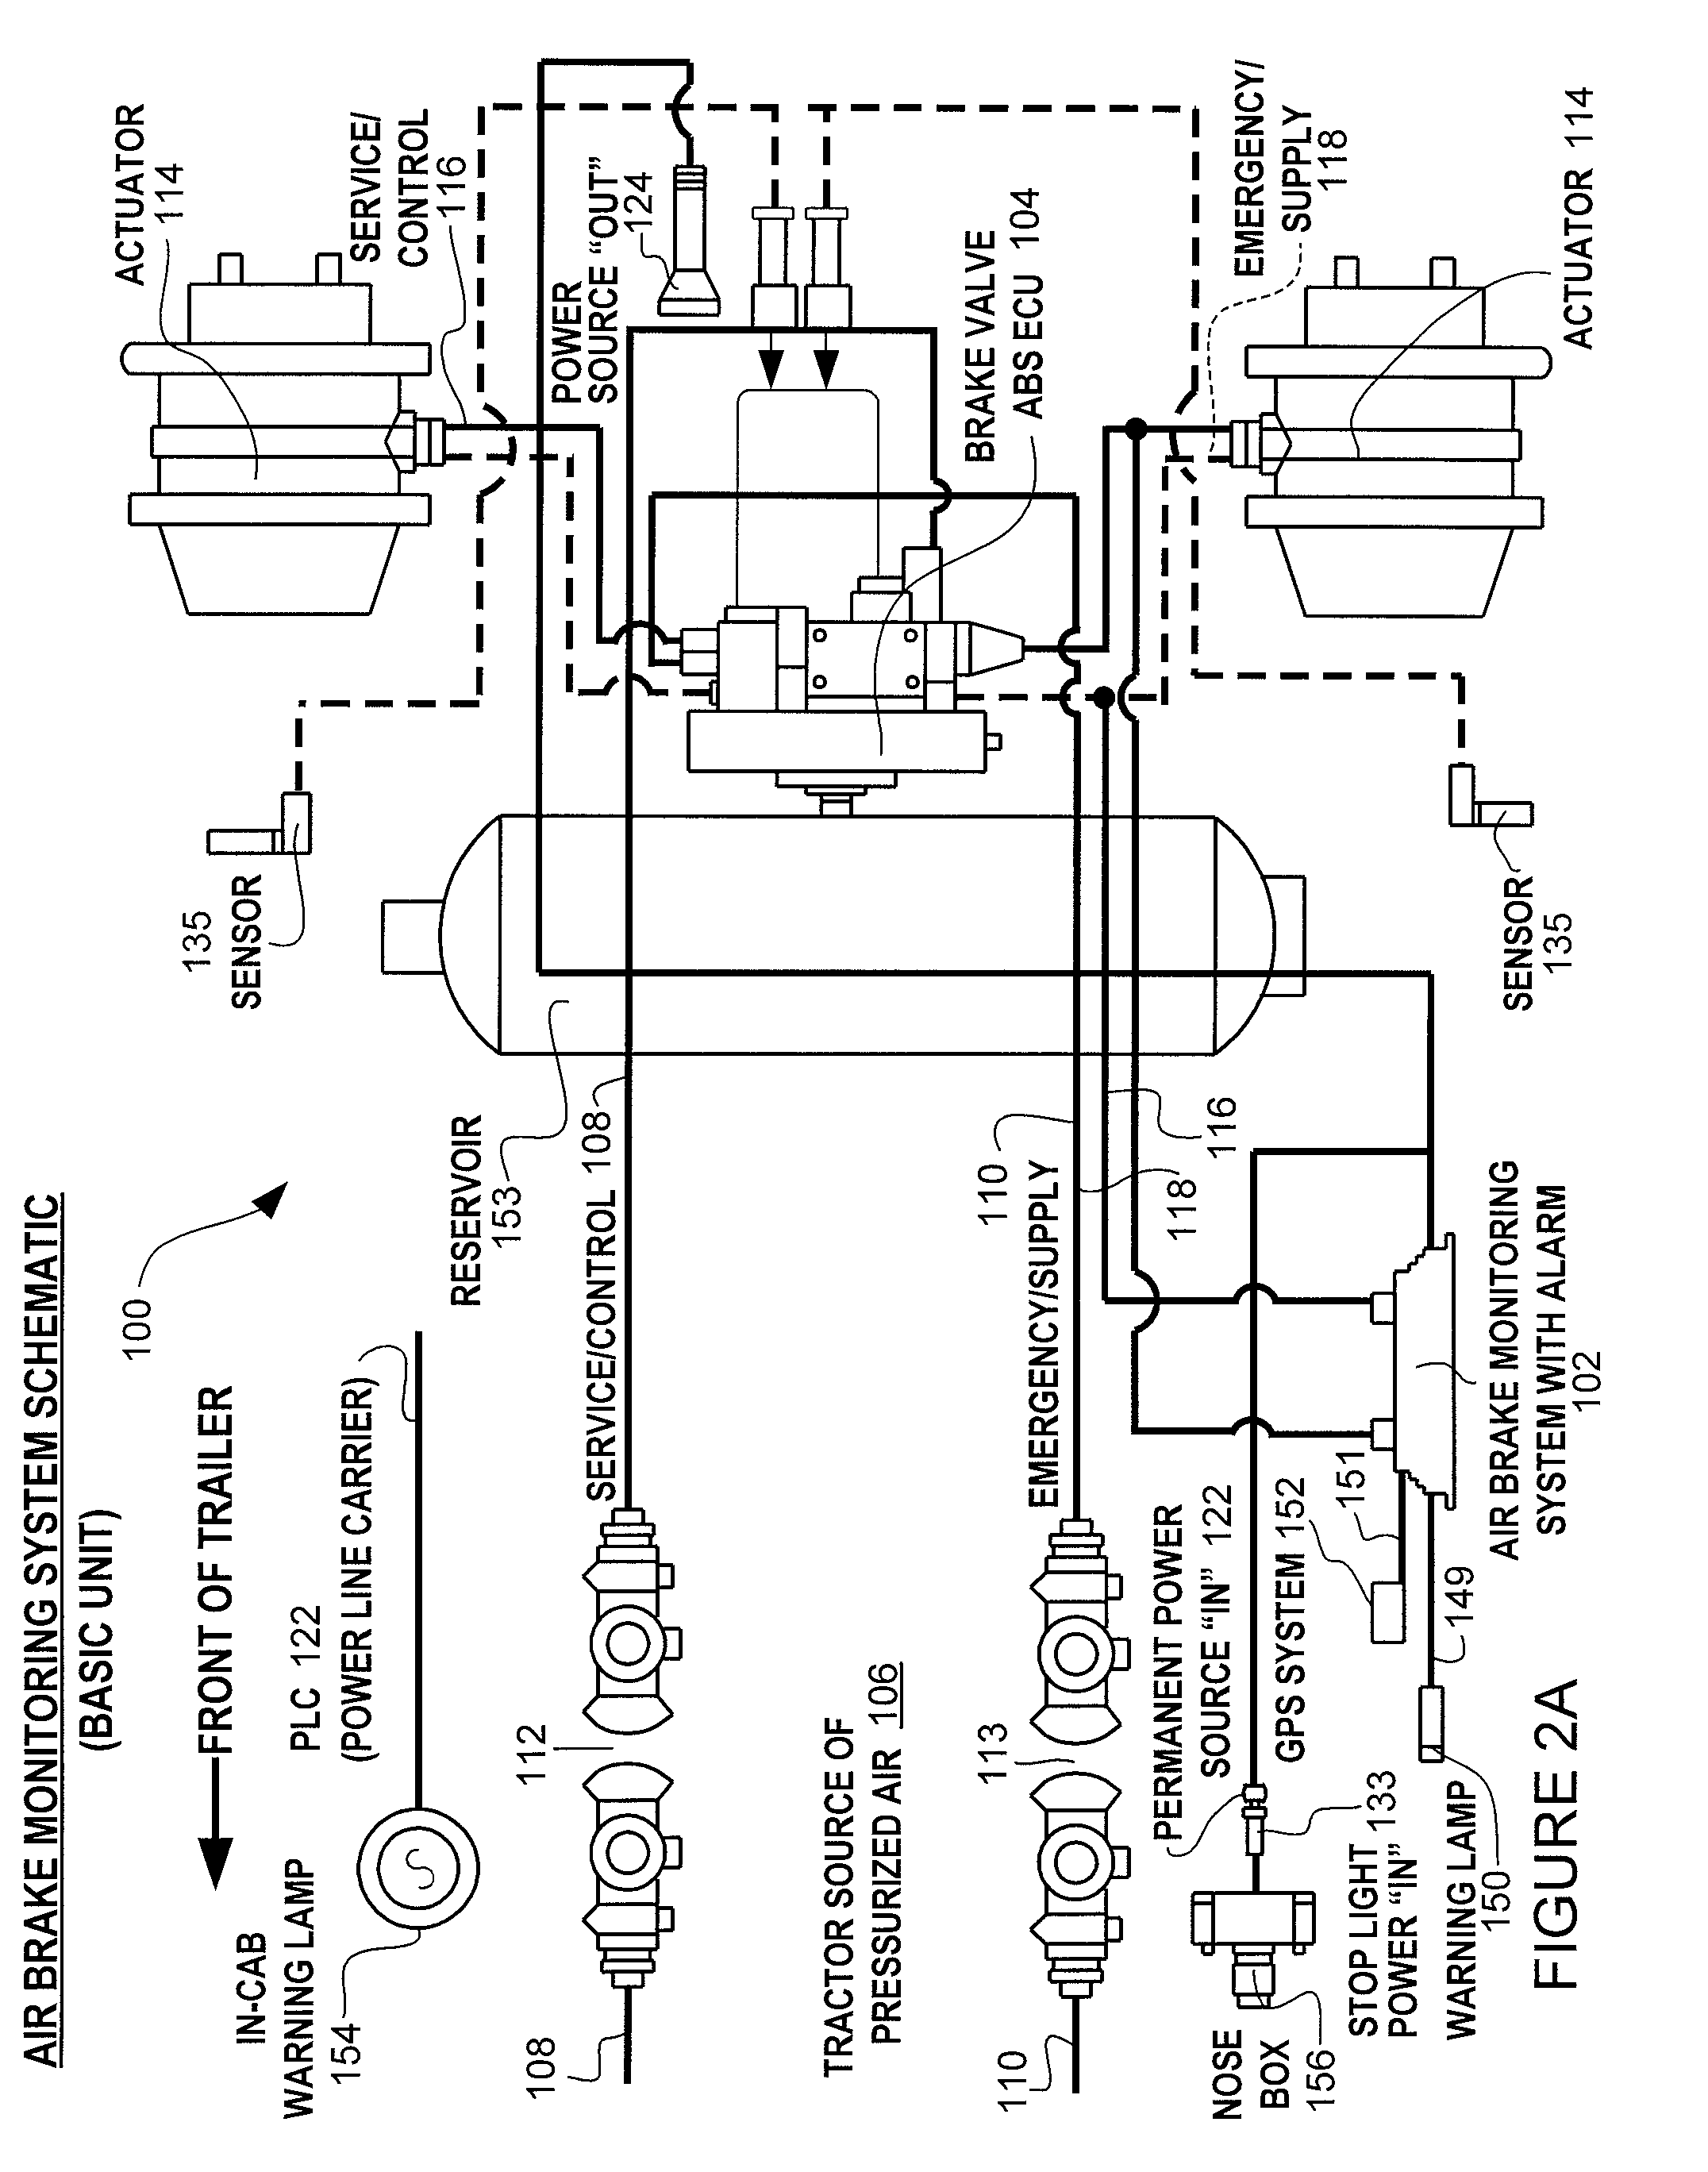 patent us8204668 brake monitoring system patents